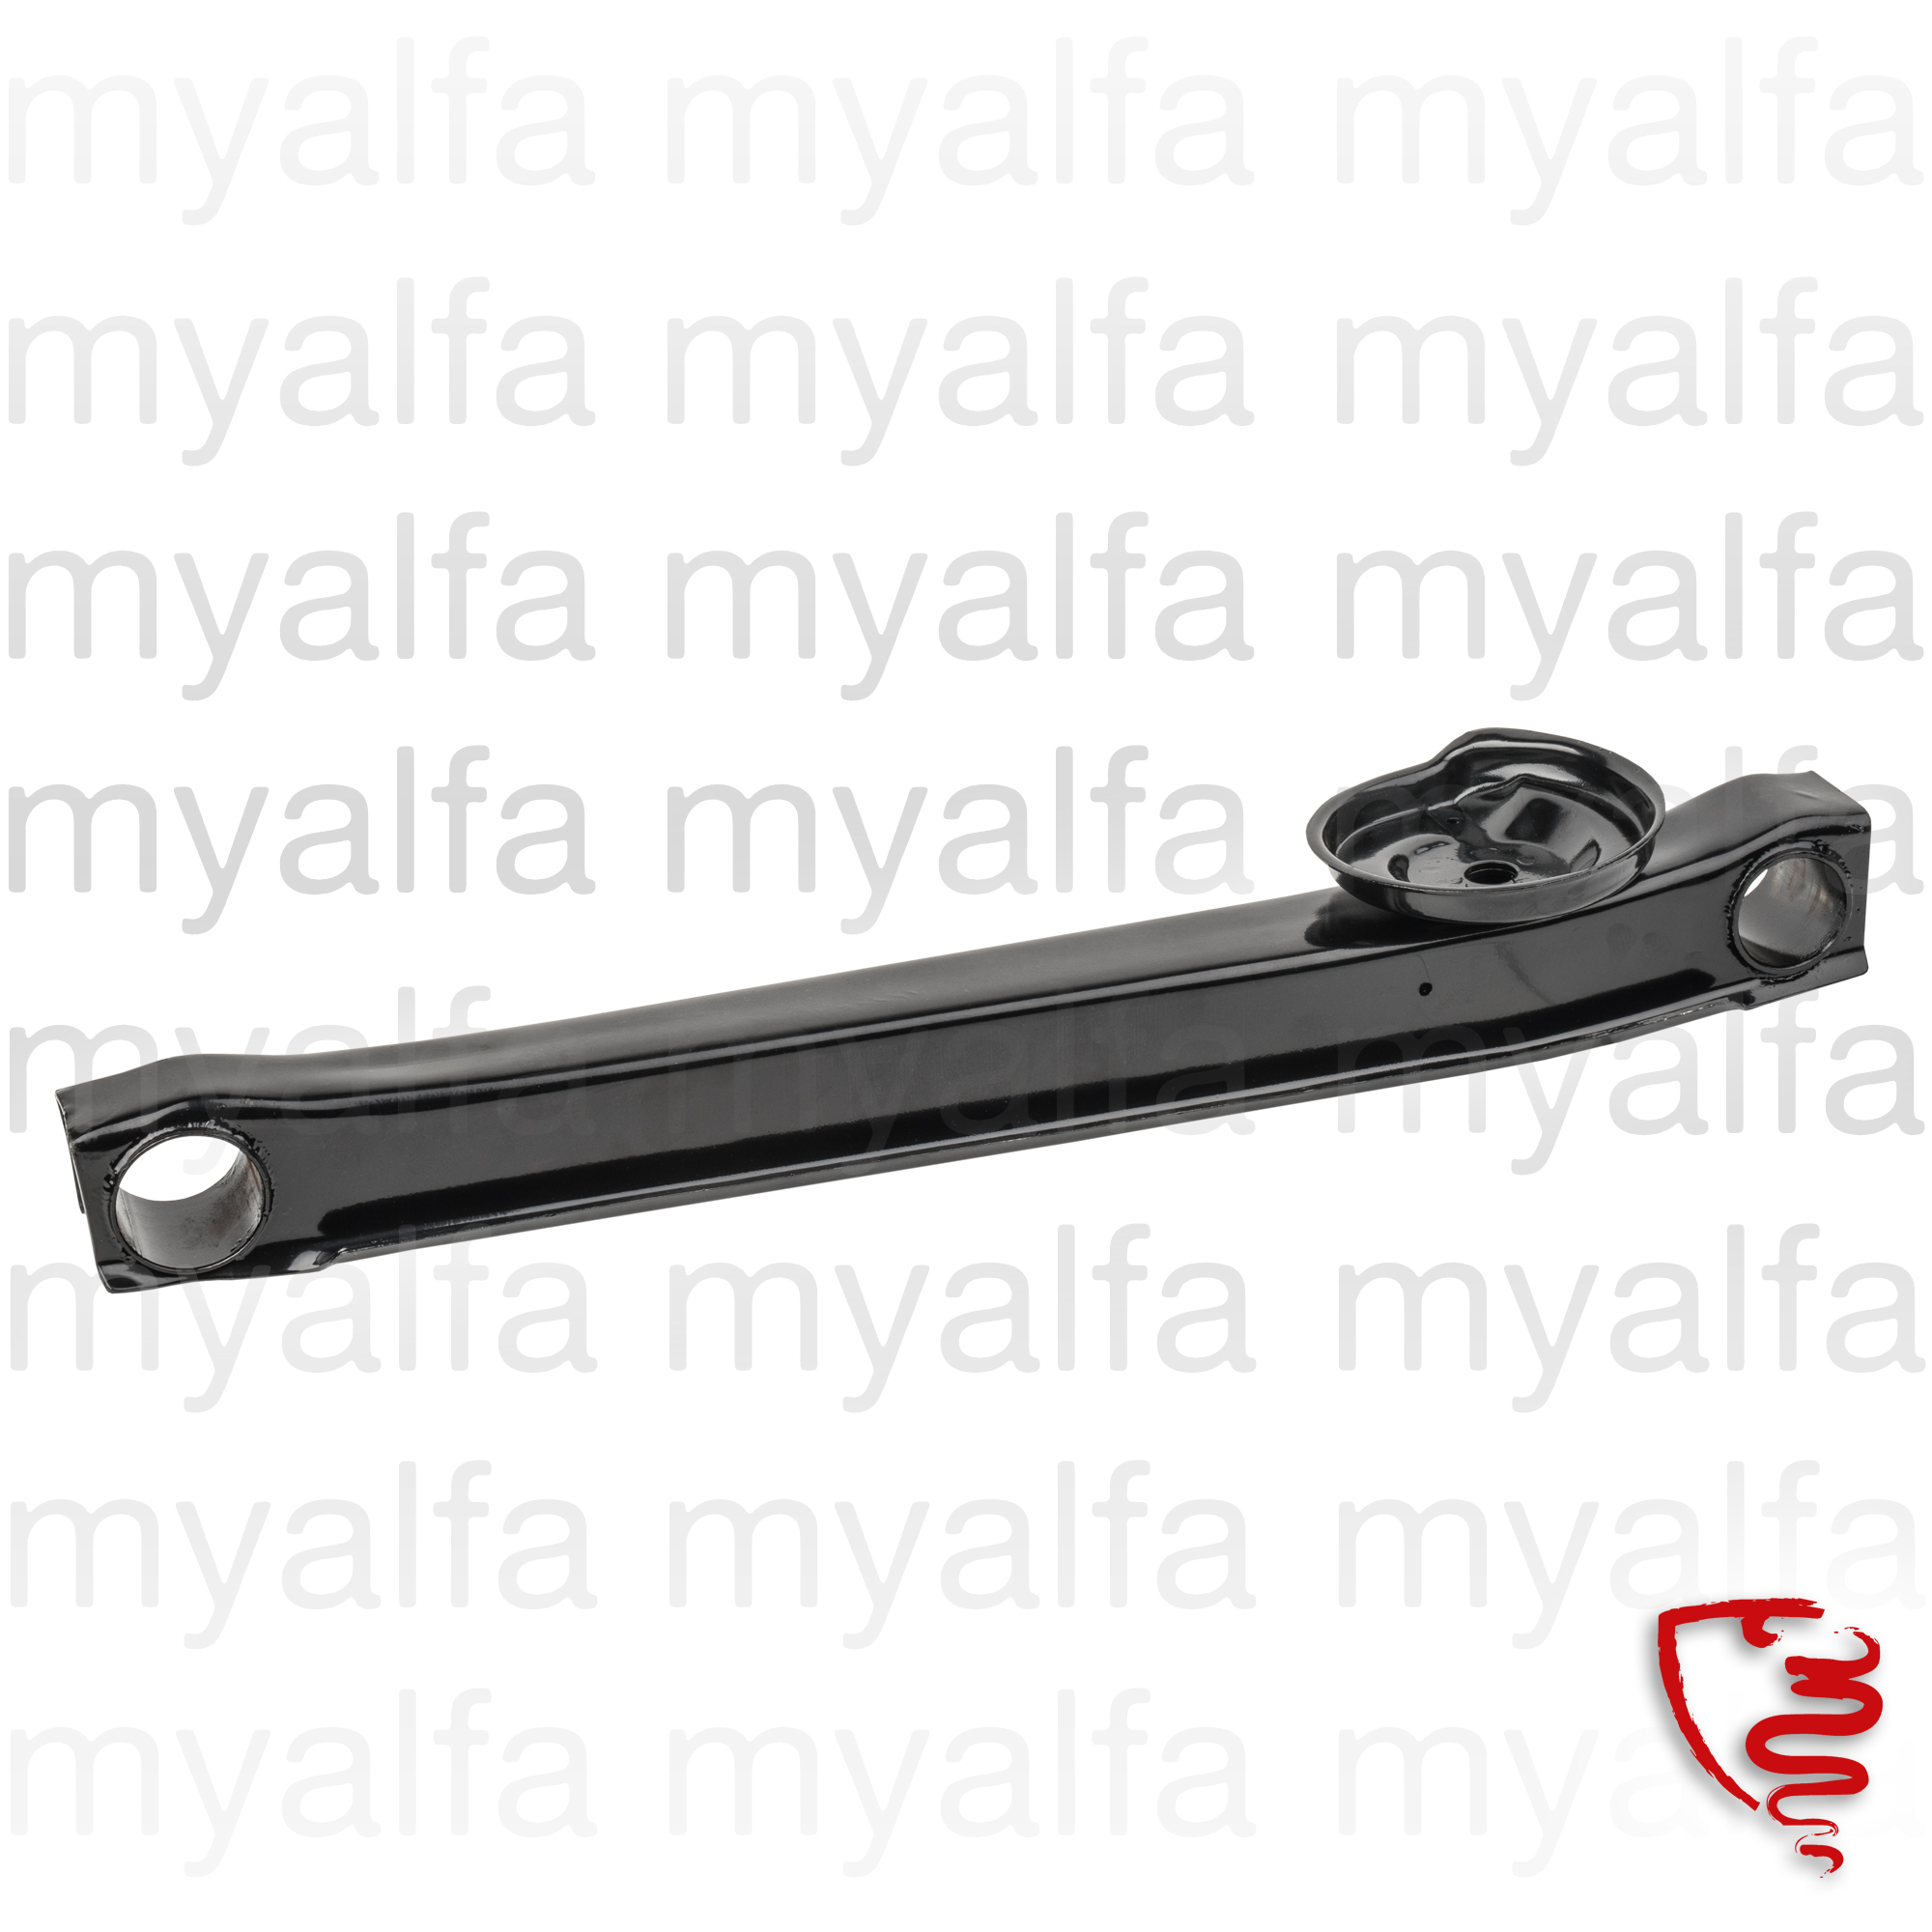 Rear Arm 1968-93 for 105/115, Chassis Mount, Rear suspension, Trailing Arms/bushings